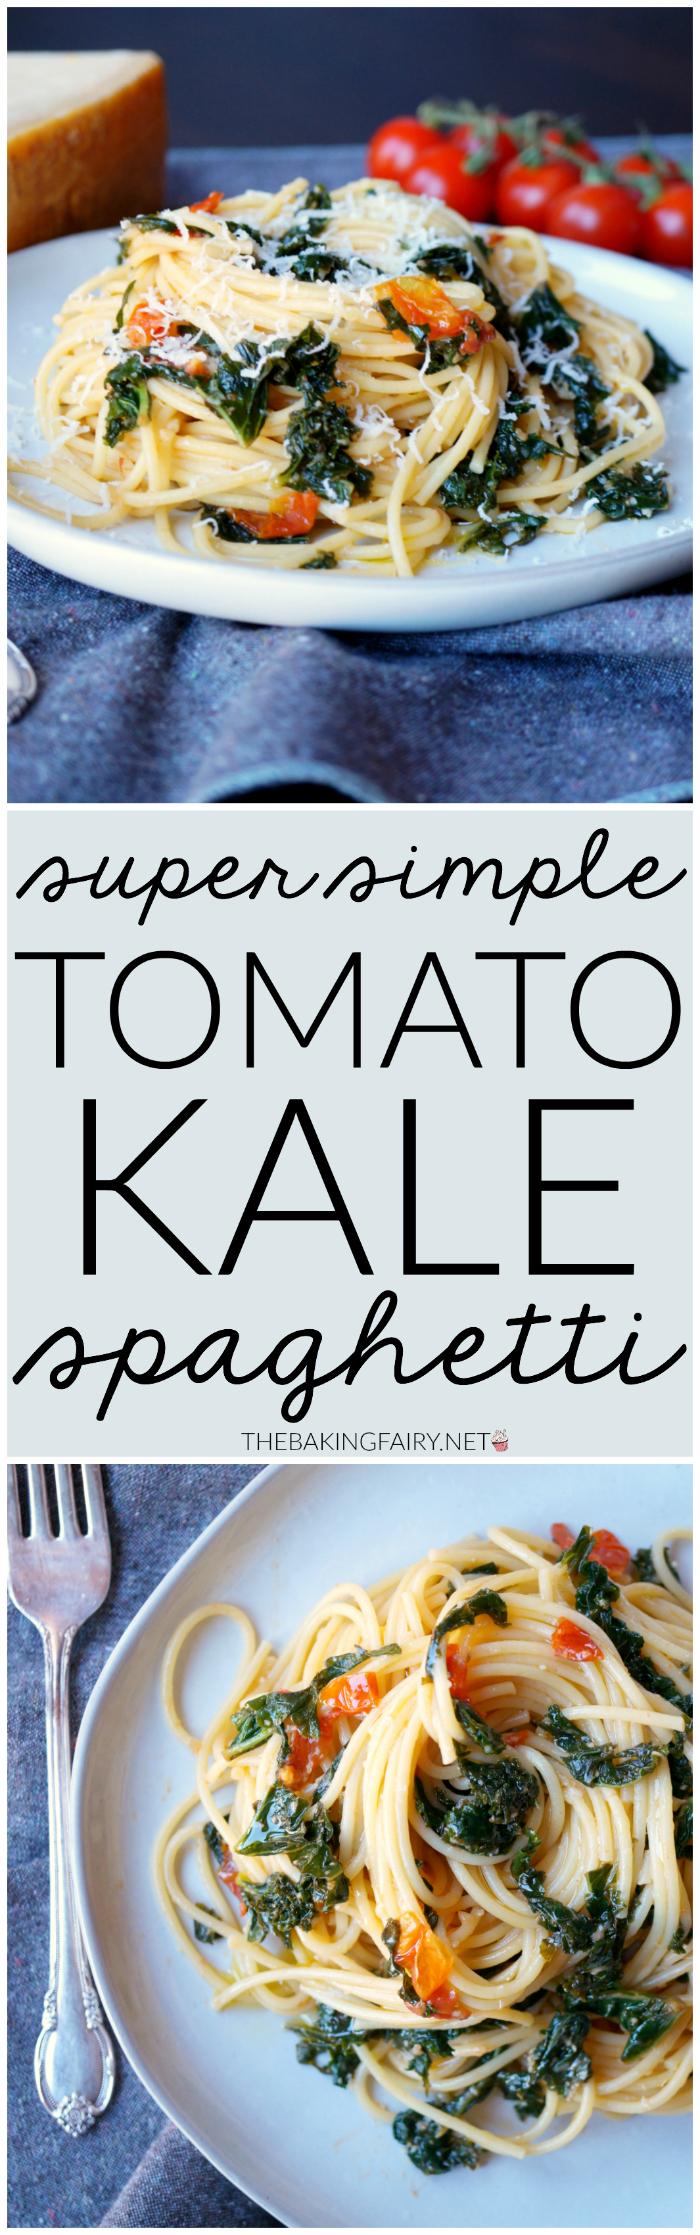 super simple tomato kale spaghetti | The Baking Fairy